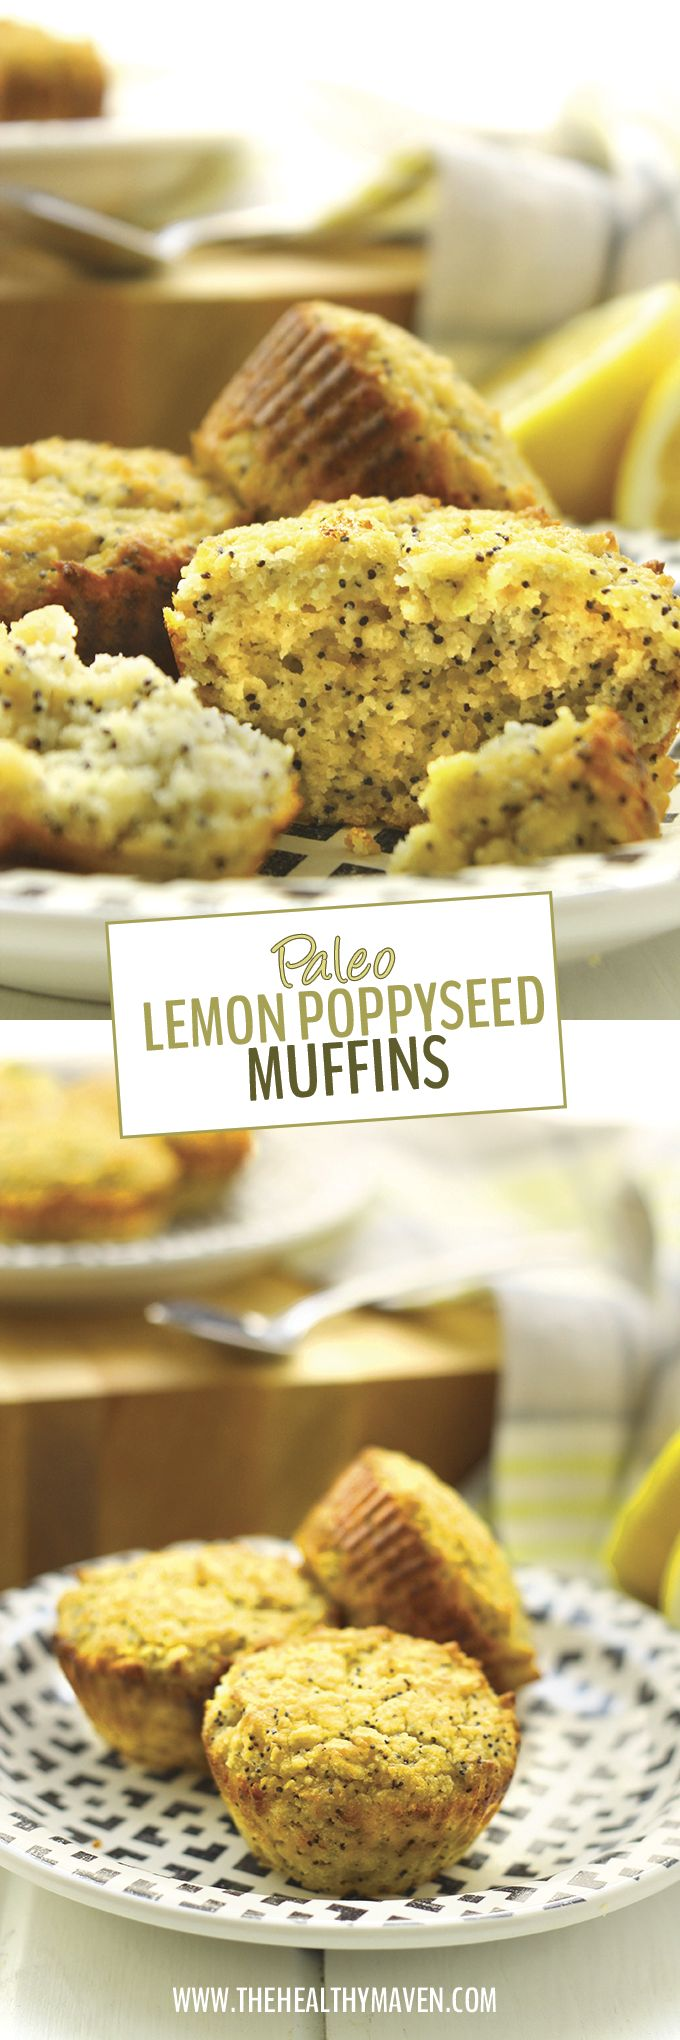 These Paleo Lemon Poppyseed Muffins are packed-full of flavor and nutrition but are completely grain and oil free. They will quickly become your new favorite Spring treat for healthy snacking on the go.